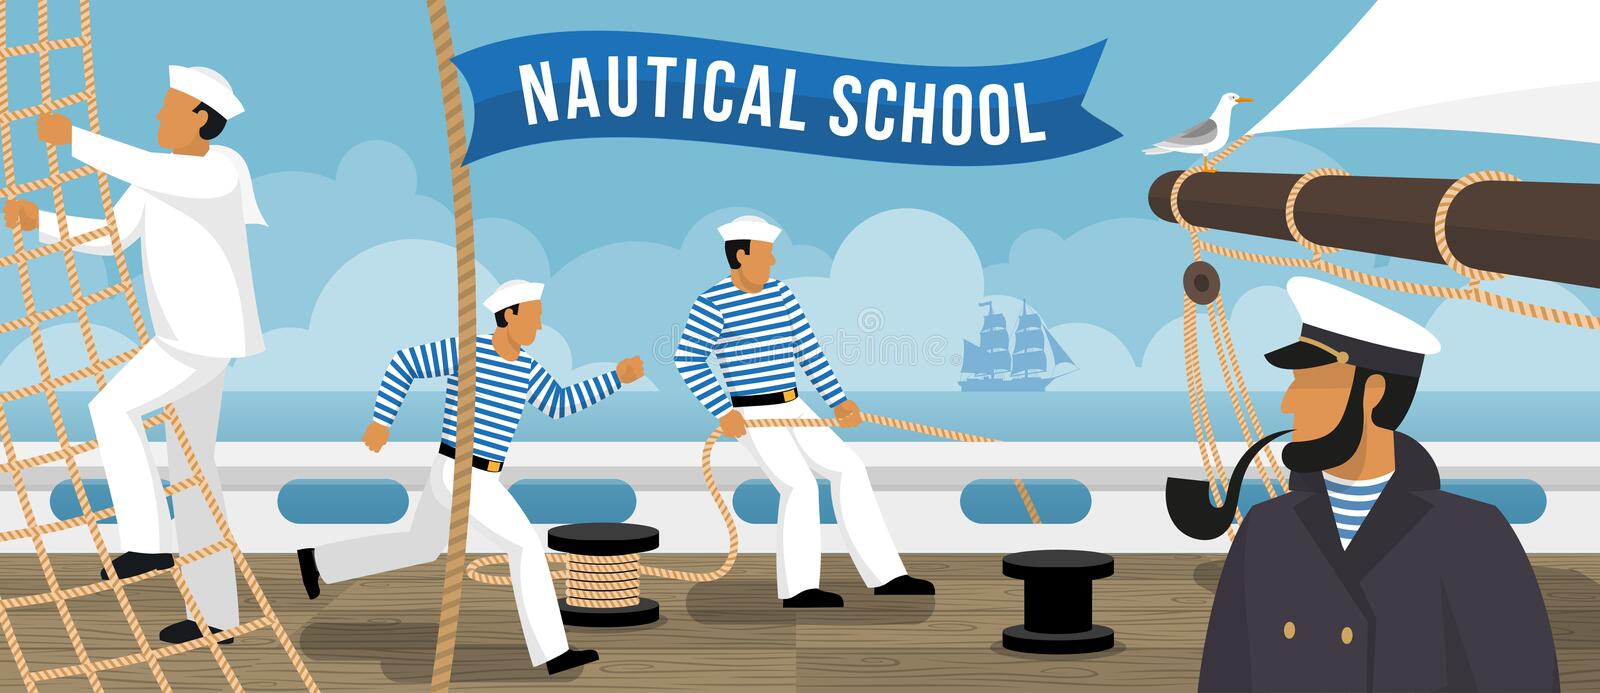 Nautical School Sailboat Flat Banner royalty free illustration